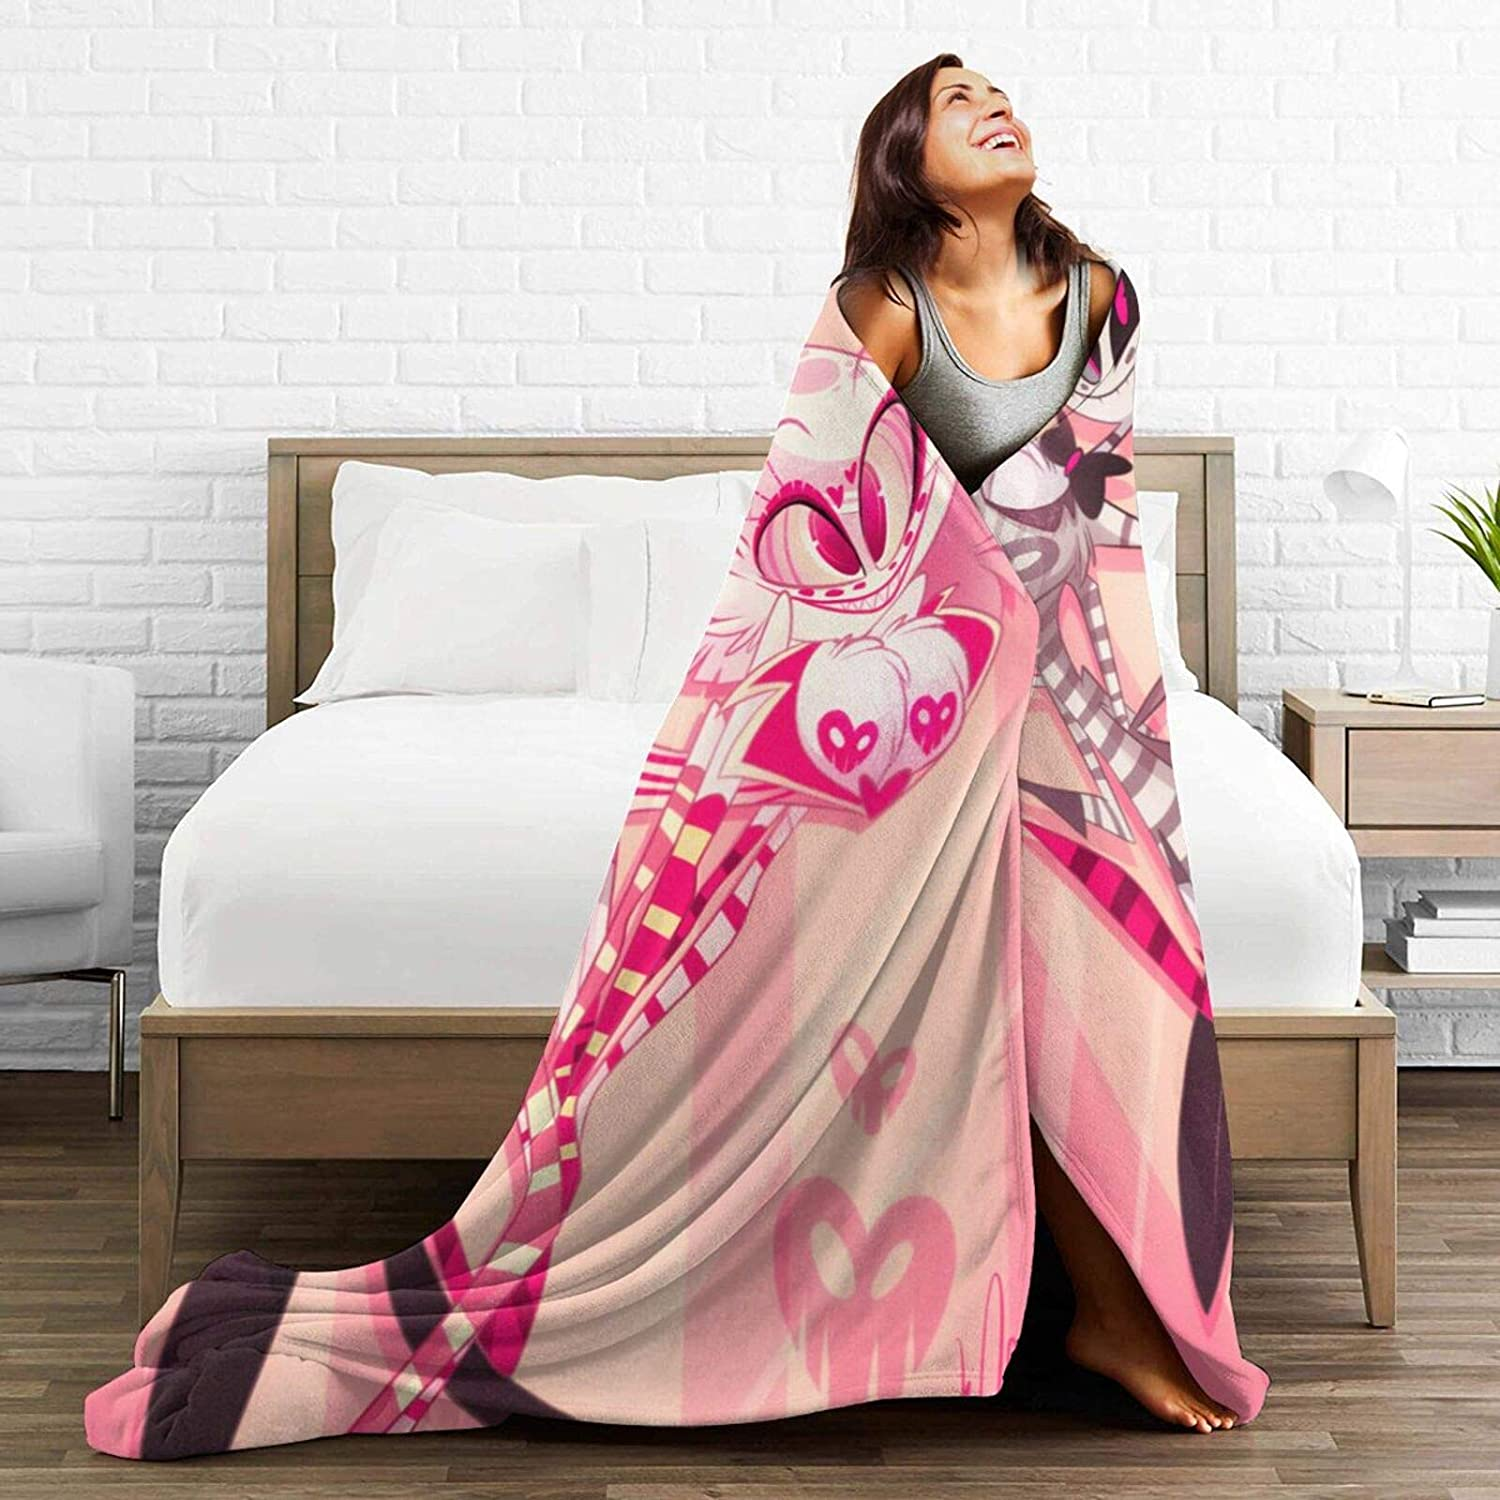 Nagaraja Hazbin Hotel Blanket Super Soft and Comfortable Plush Flannel Suitable for Sofa Living Room Decoration Bed Use in All Seasons 50x40 Inch for Child